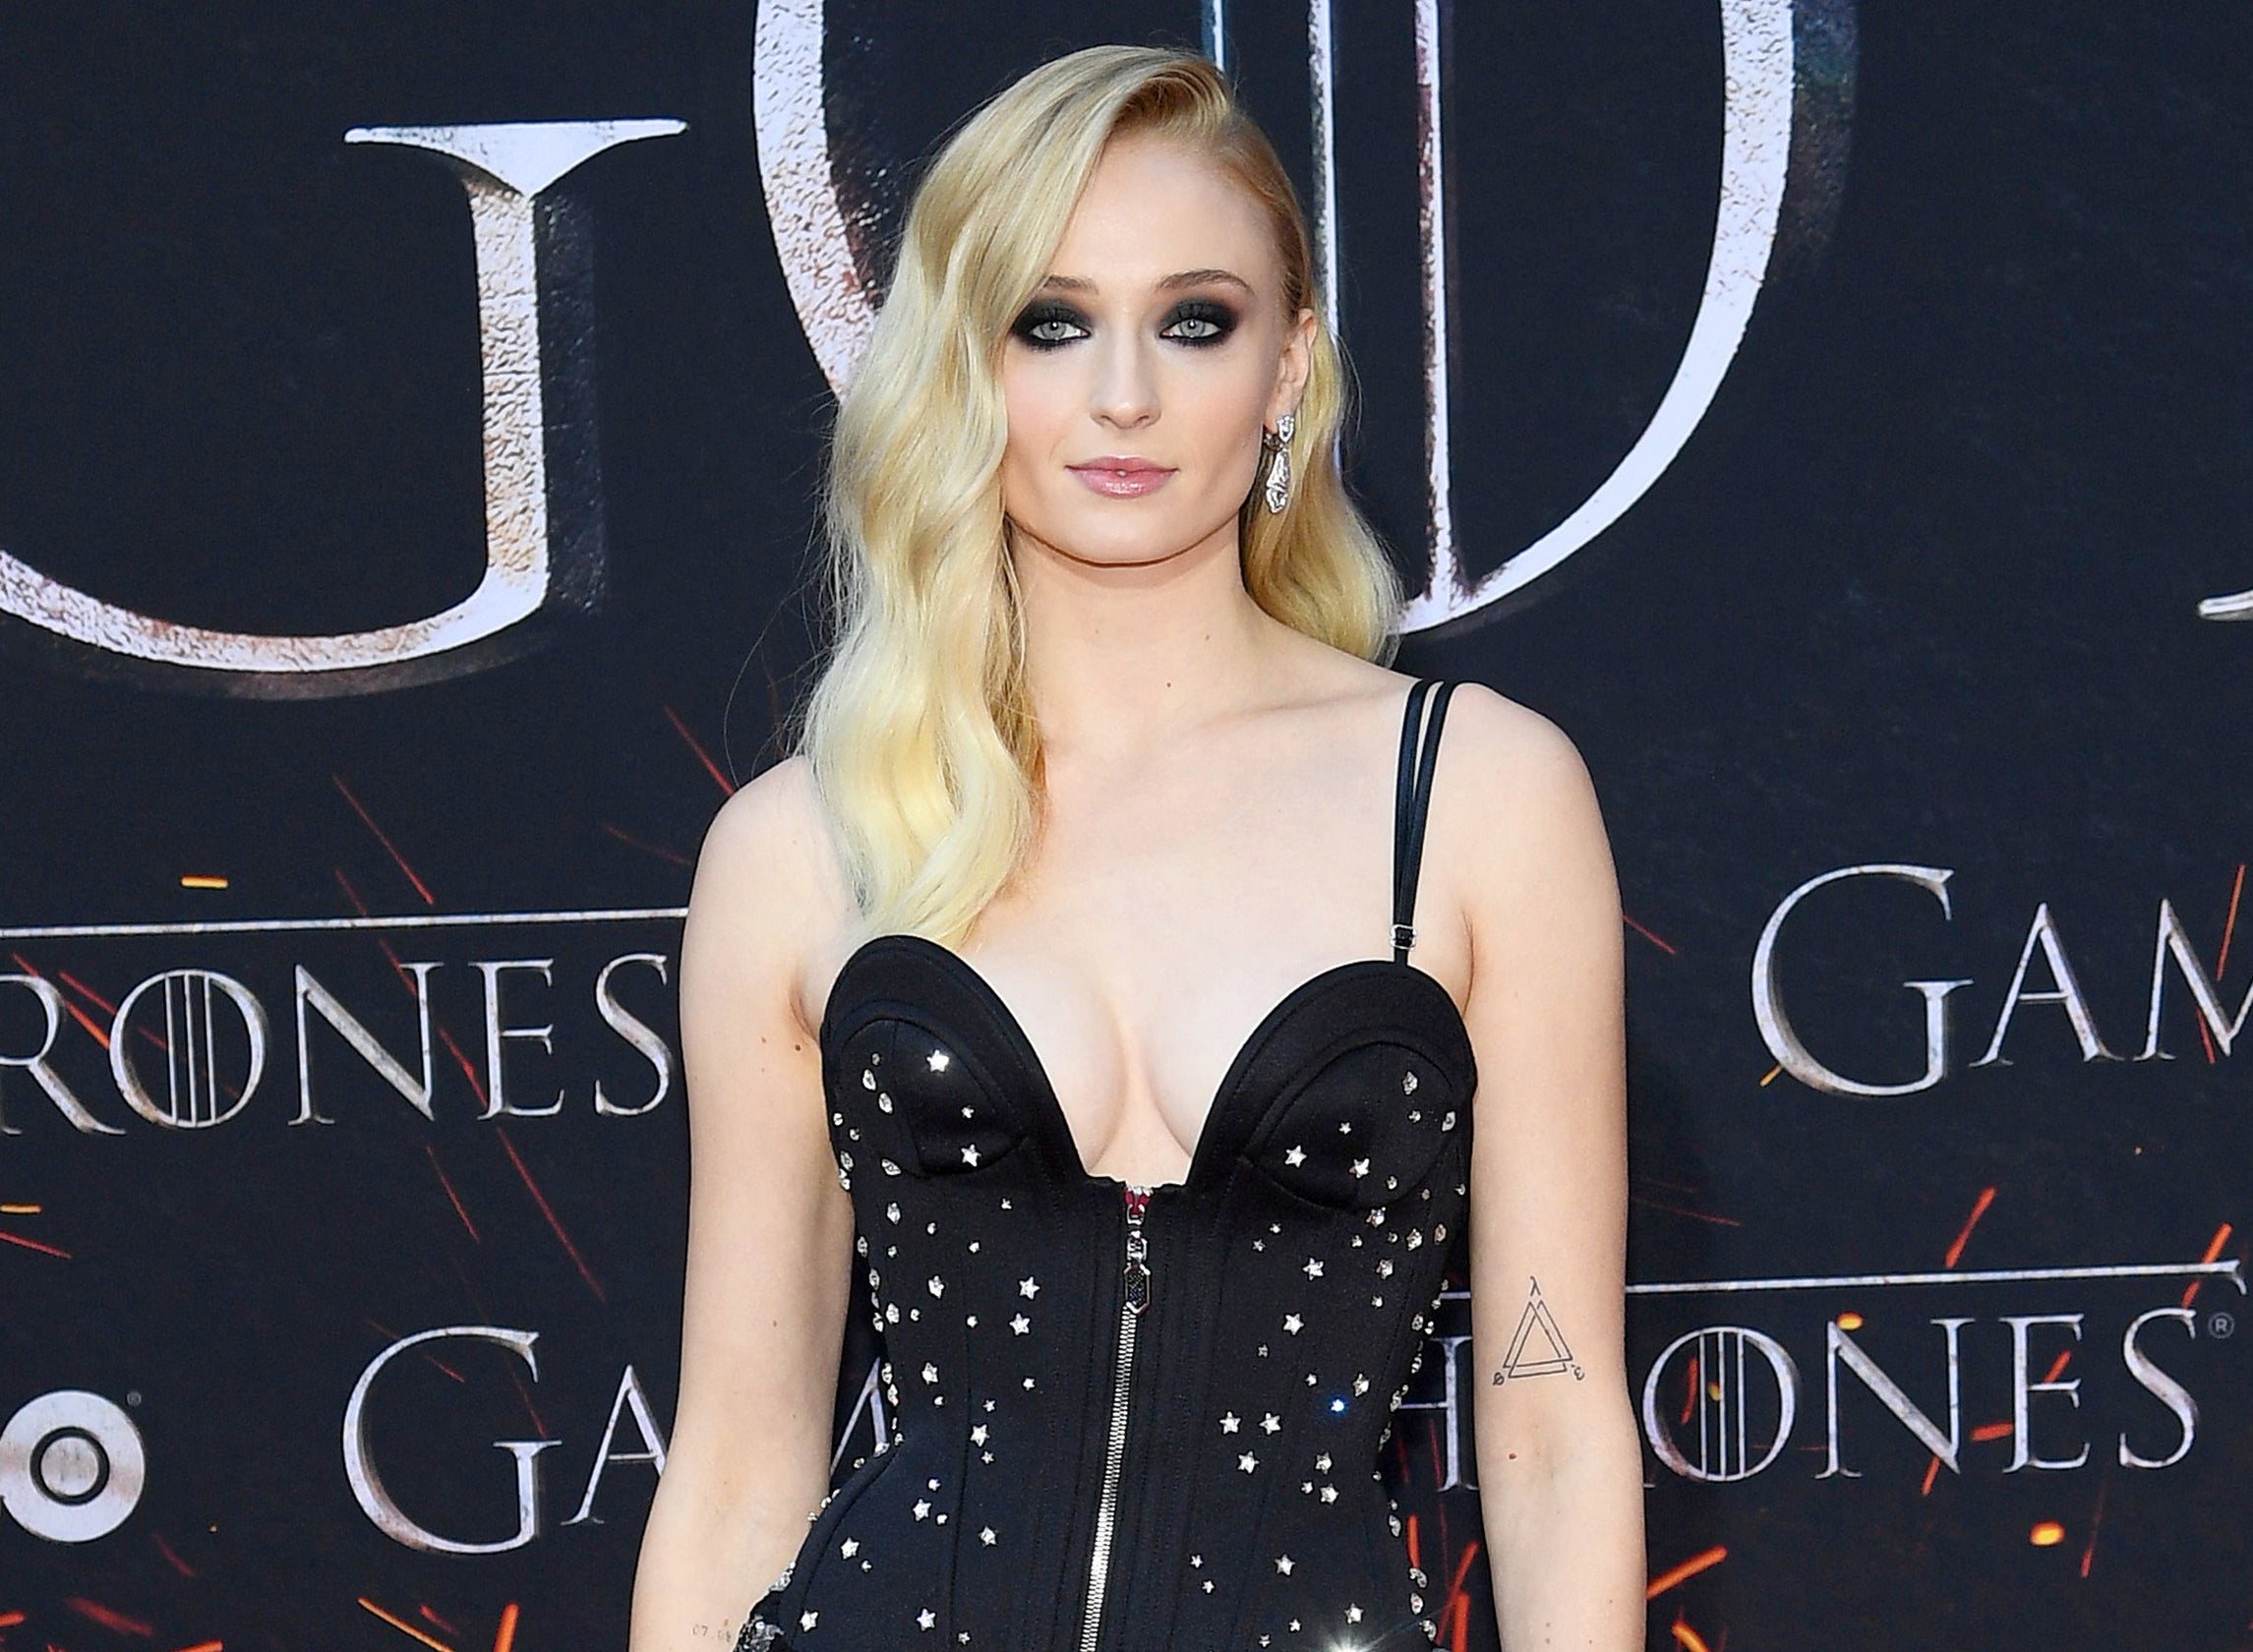 Sophie wears dark makeup and a black dress at a premiere